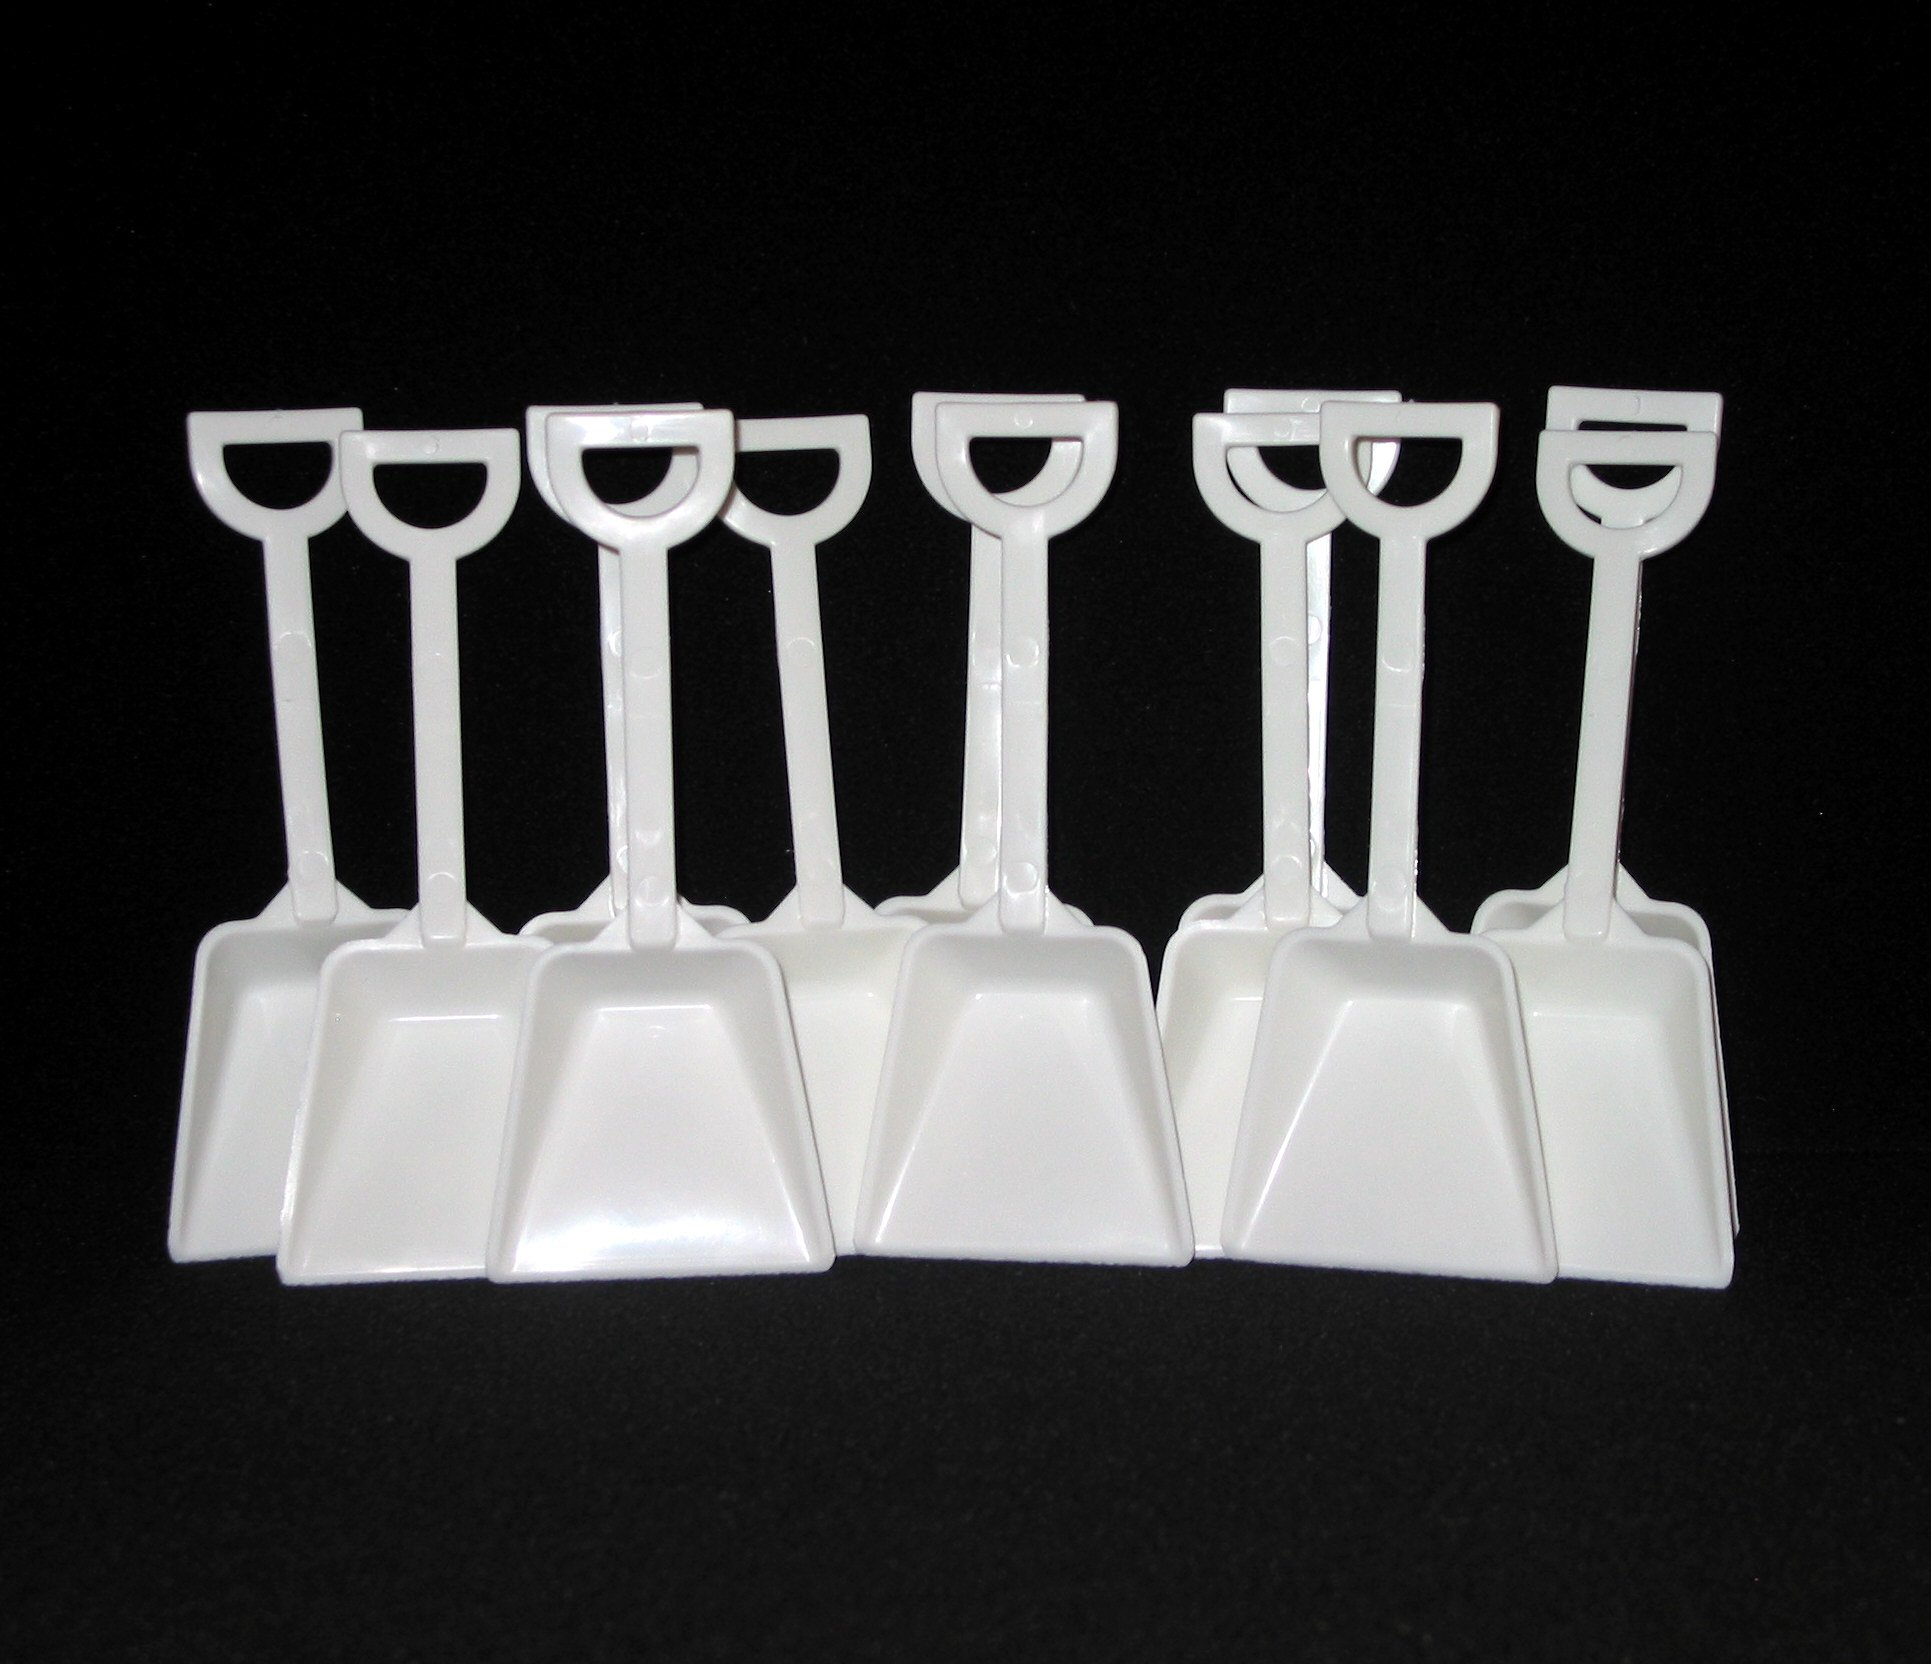 Small White Plastic Toy Shovels Wholesale Lot, 7'' Tall, Pack 500 by Jean's Plastics (Image #1)